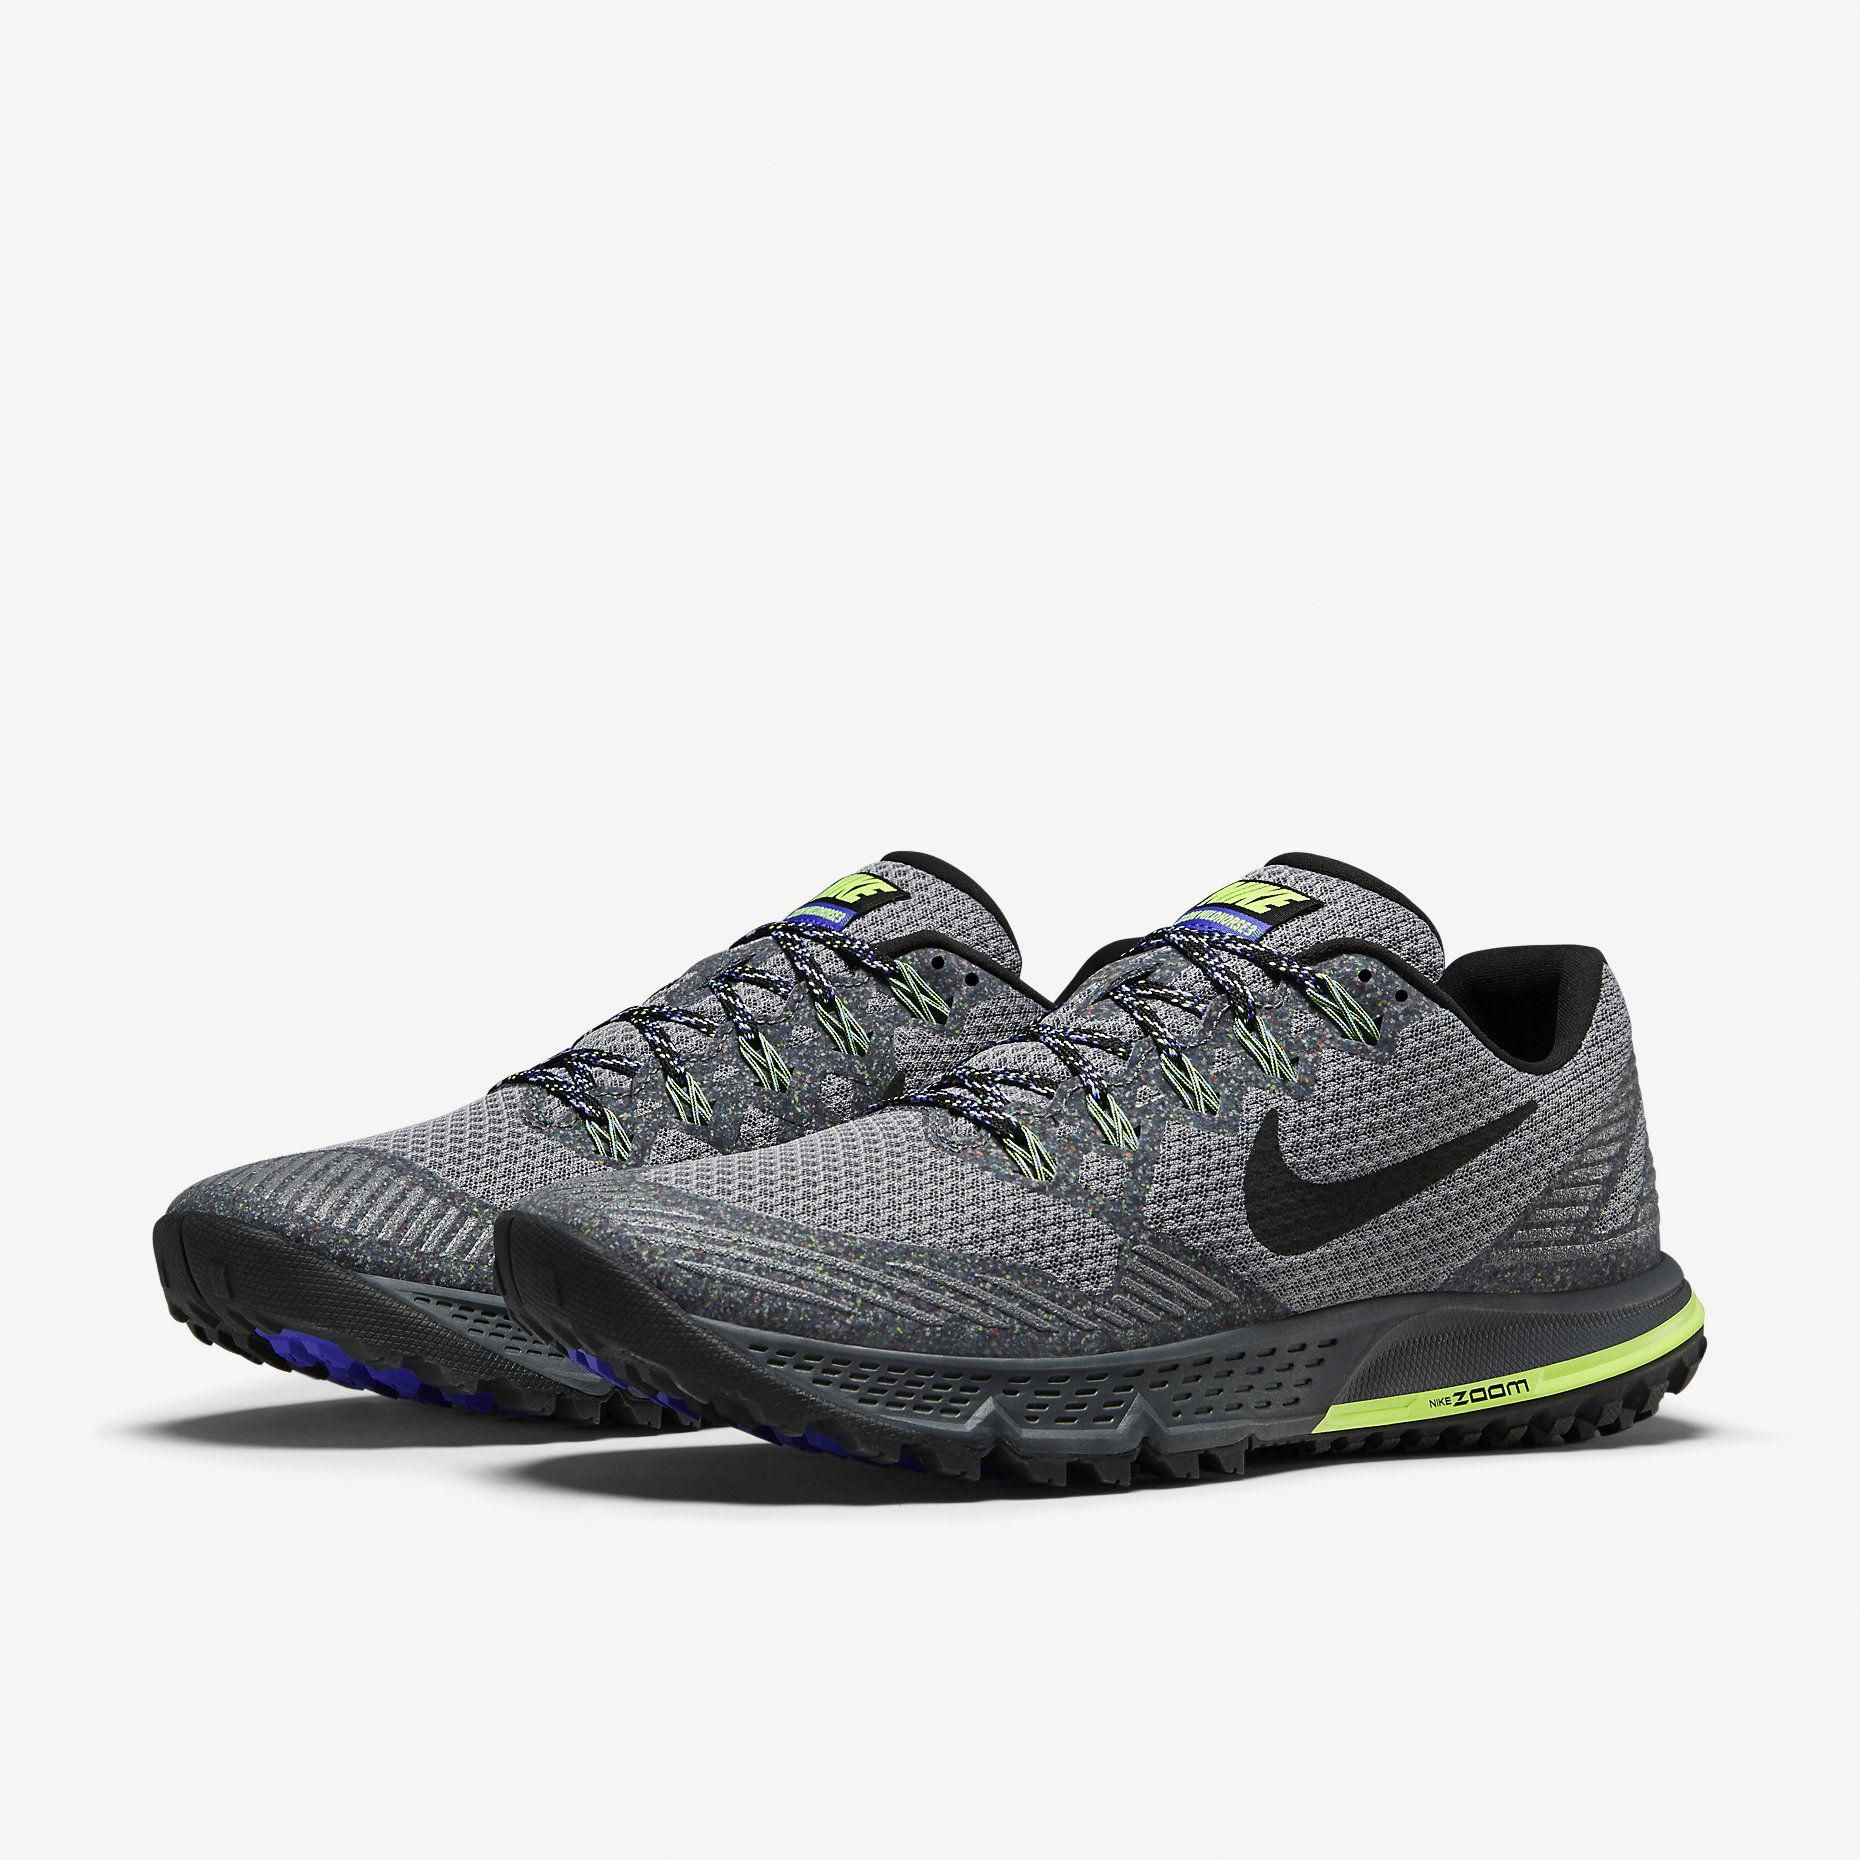 aea1d9854c4d Nike Air Zoom Wildhorse 3 Women s Running Shoe. Nike Store   trailrunningshoes